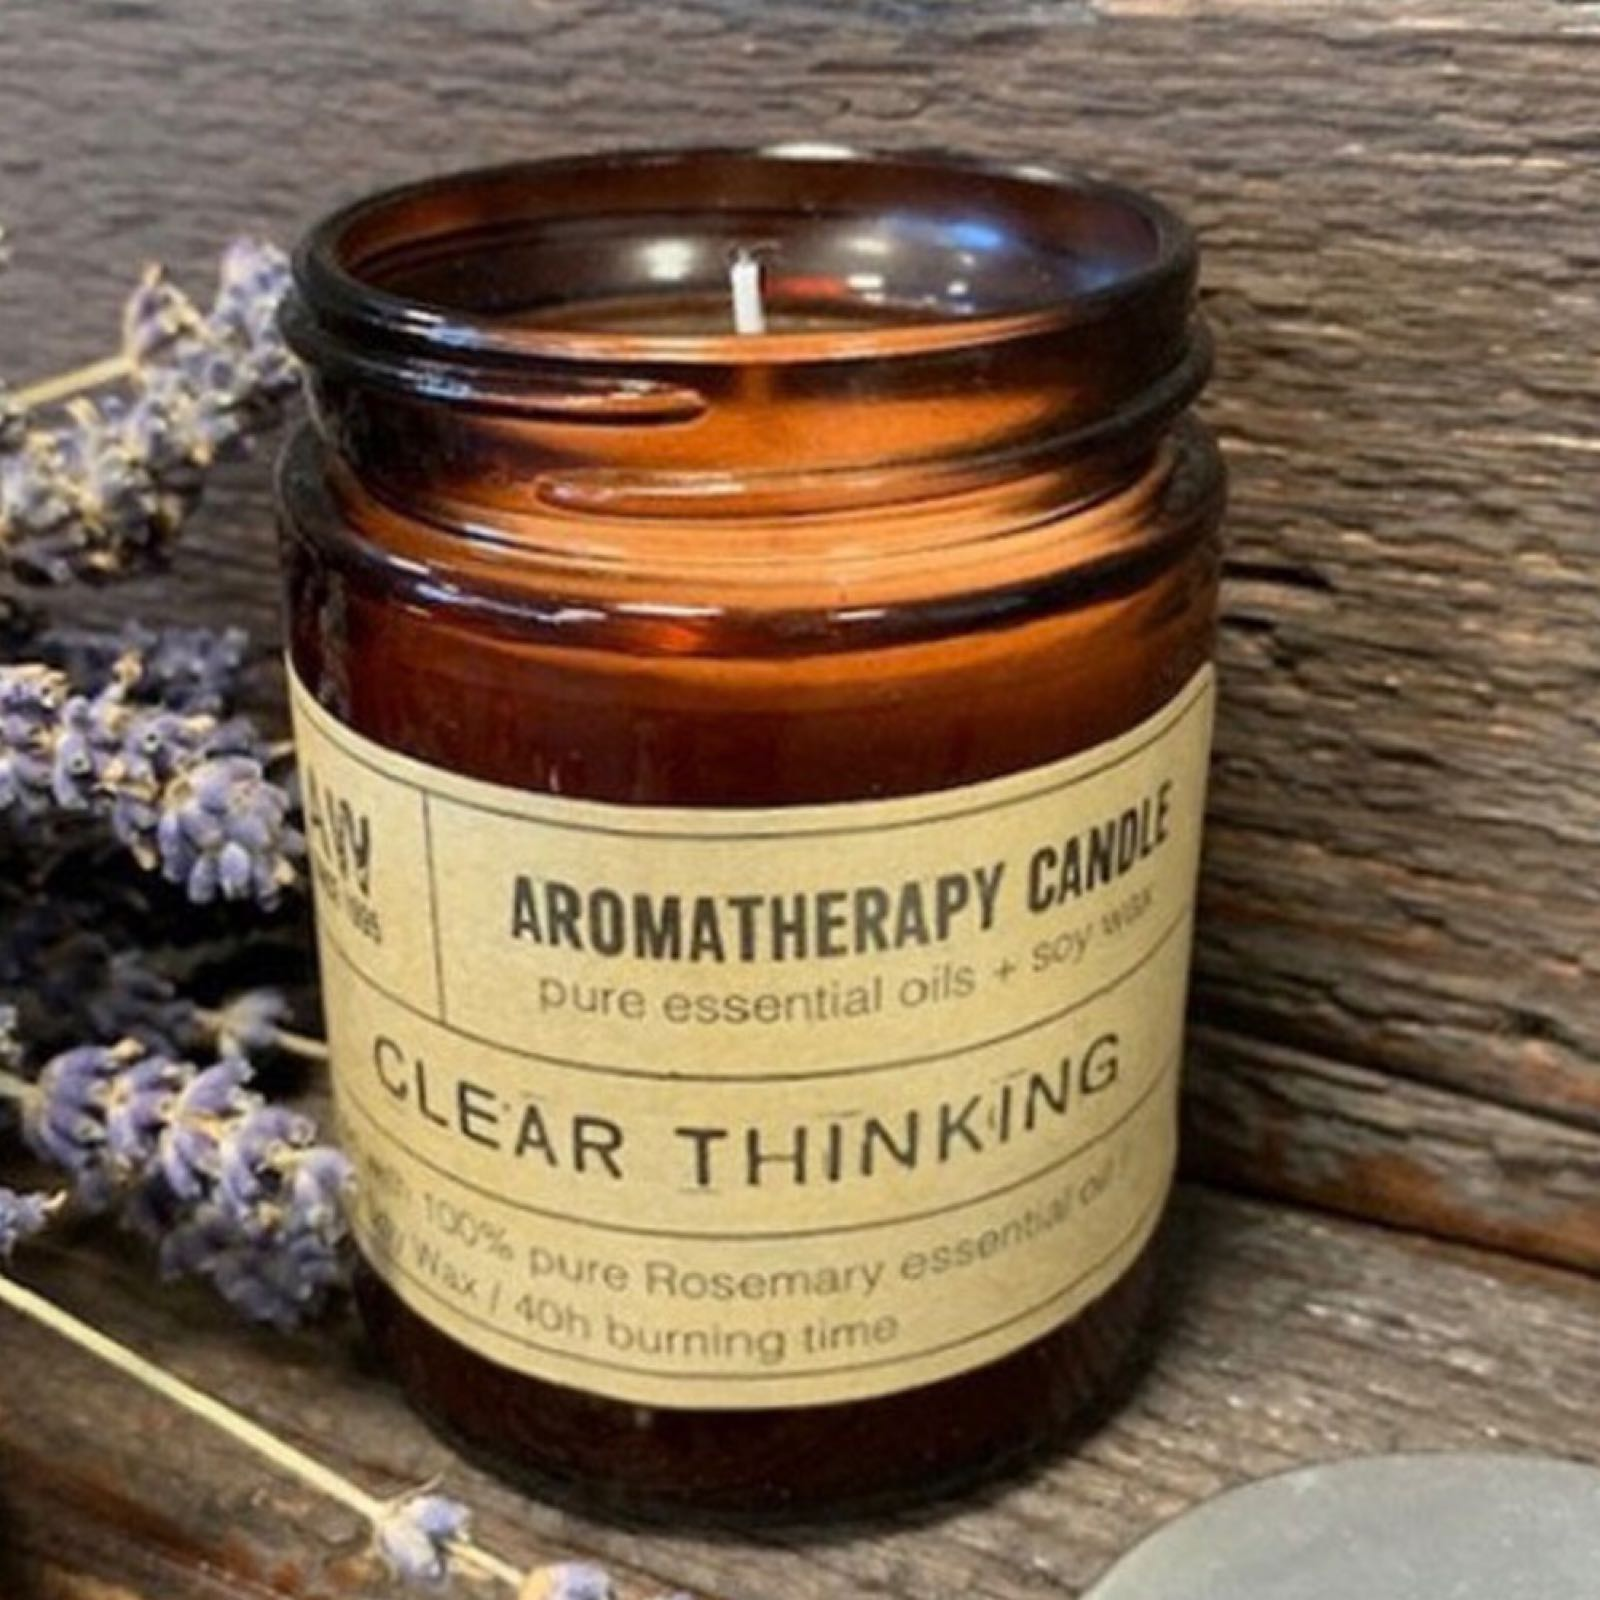 'Clear Thinking' Aromatherapy Candle